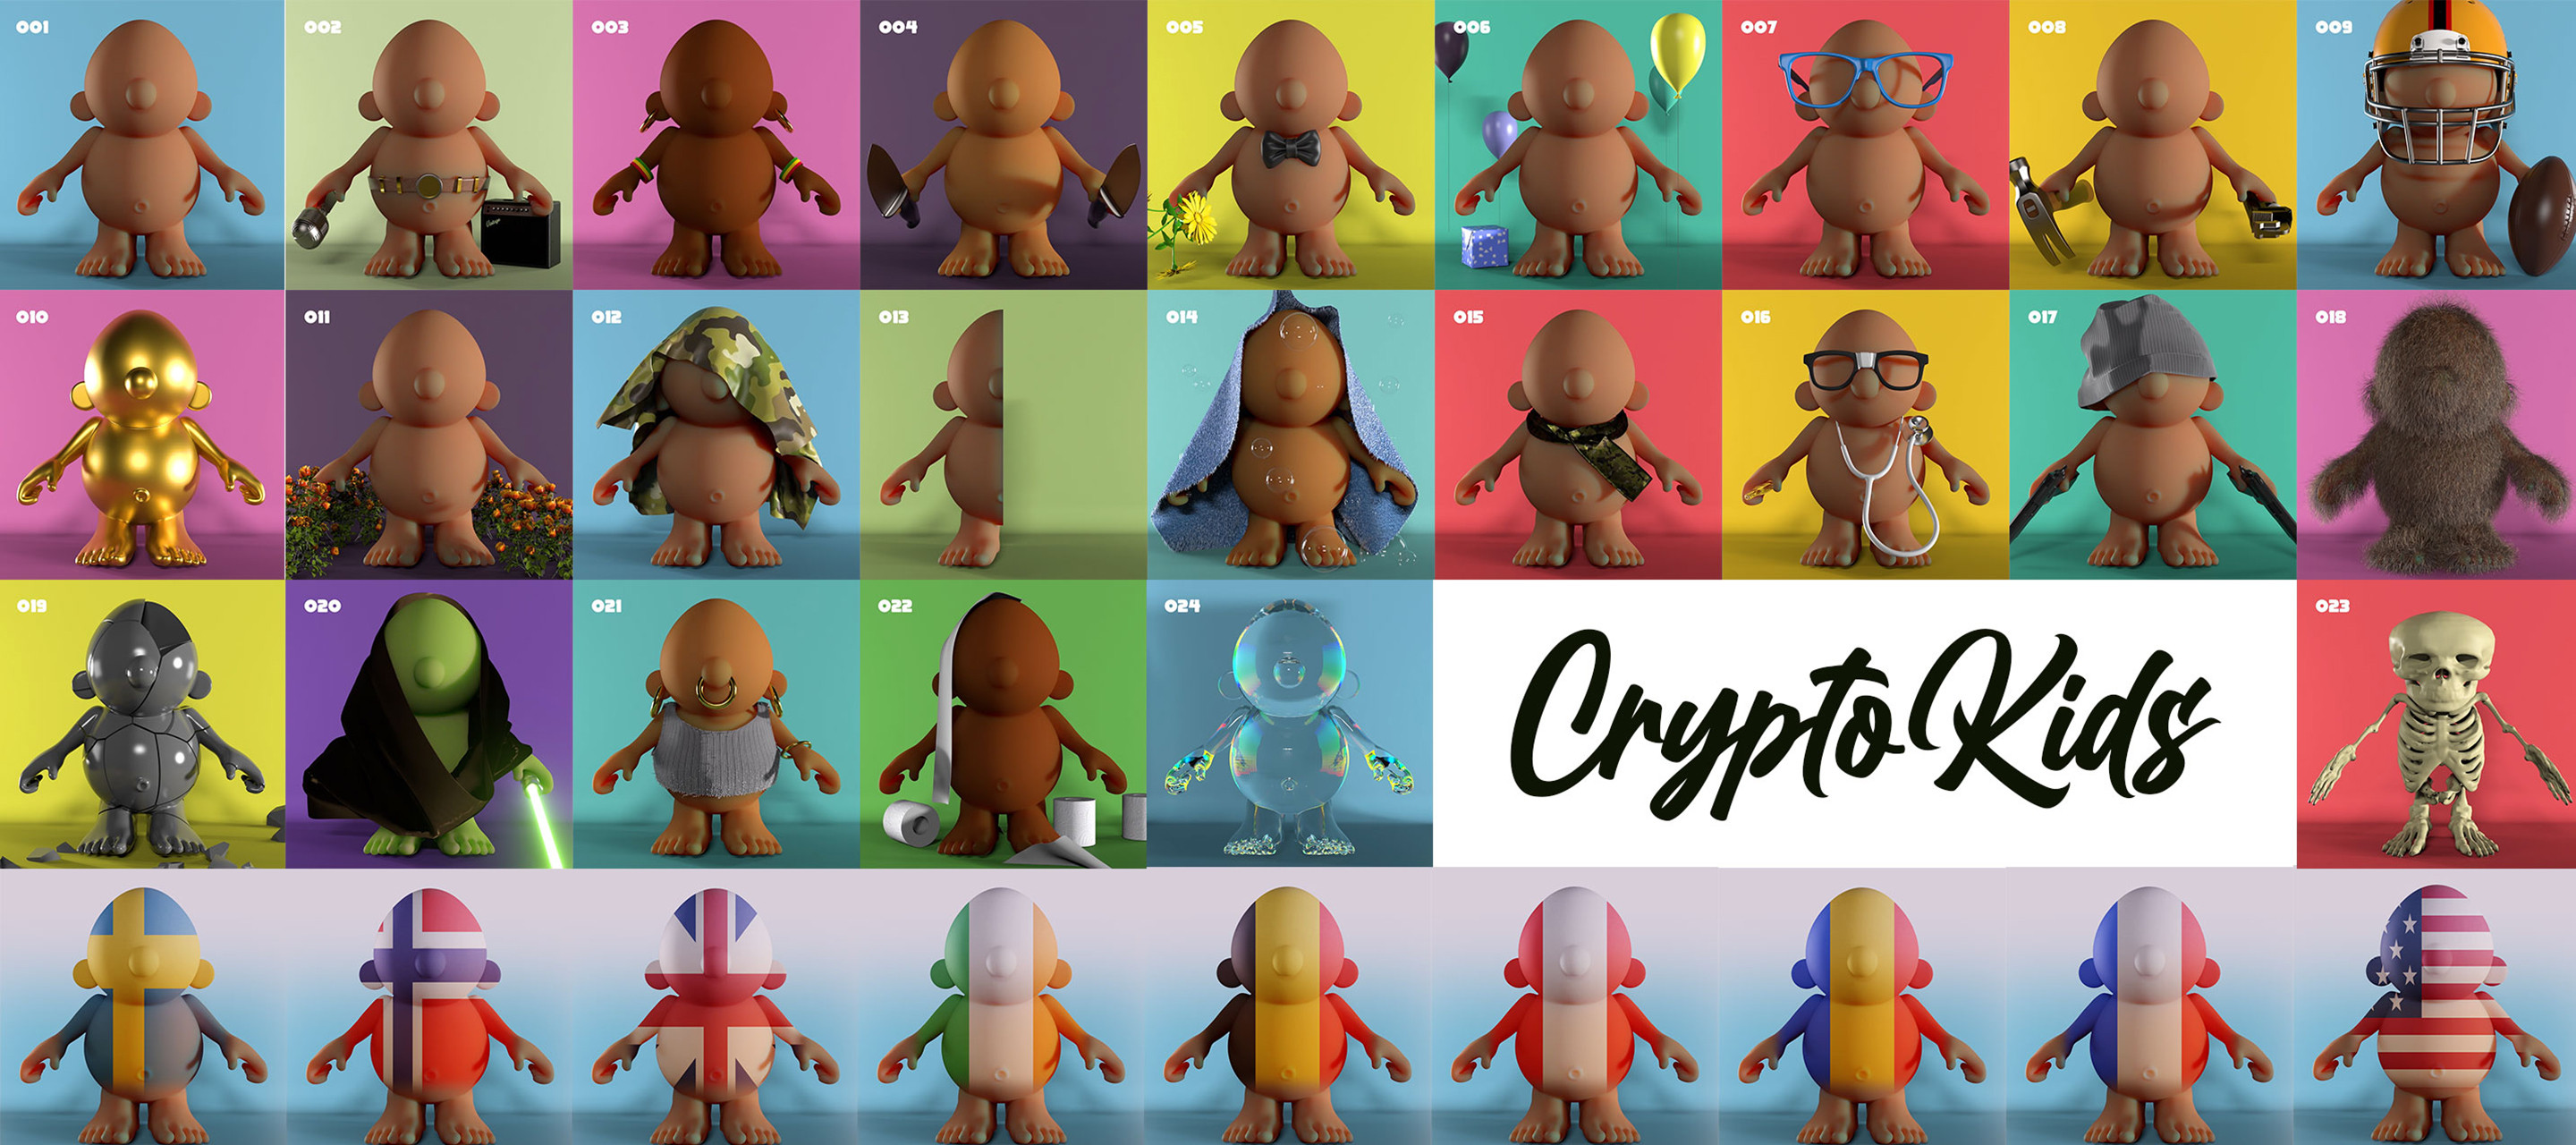 CryptoKids™ Kids having fun in the Ethereum blockchain. 24 unique and rare NFTs Collectibles available for pre-order or bids.  https://opensea.io/collection/crypto-kids-nft/